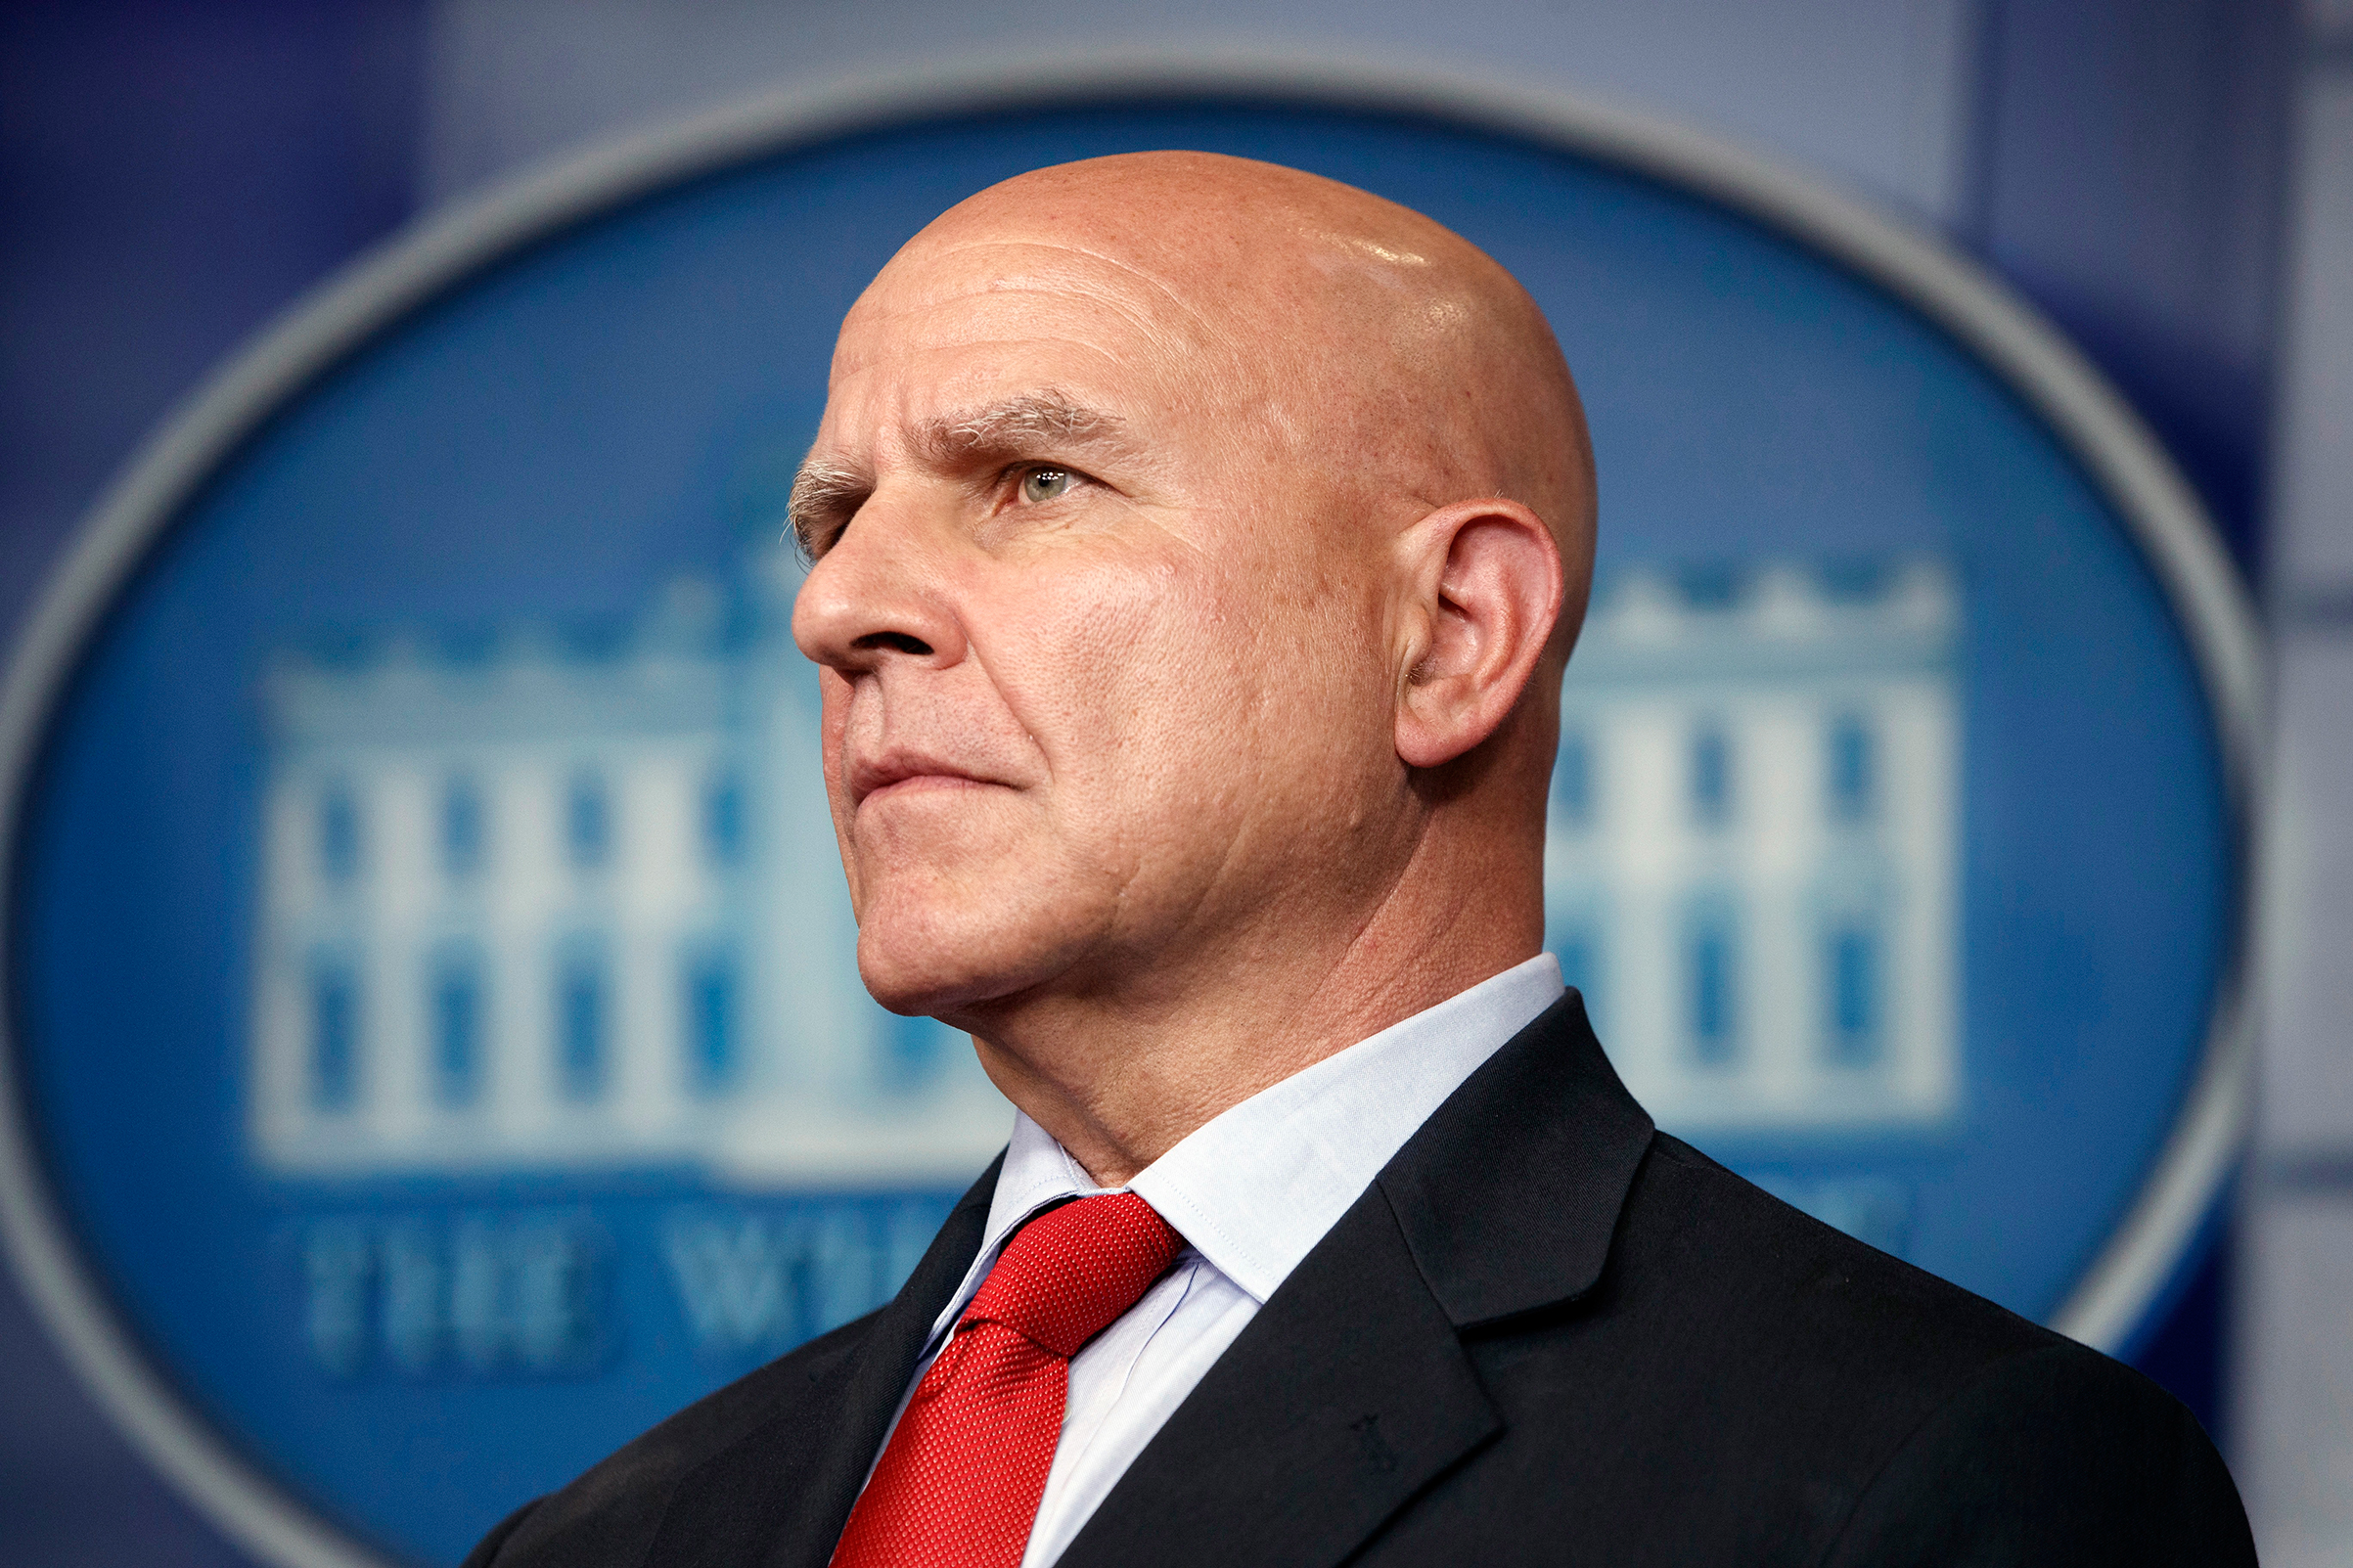 National security adviser H.R. McMaster listens during the daily press briefing at the White House, July 31, 2017, in Washington.